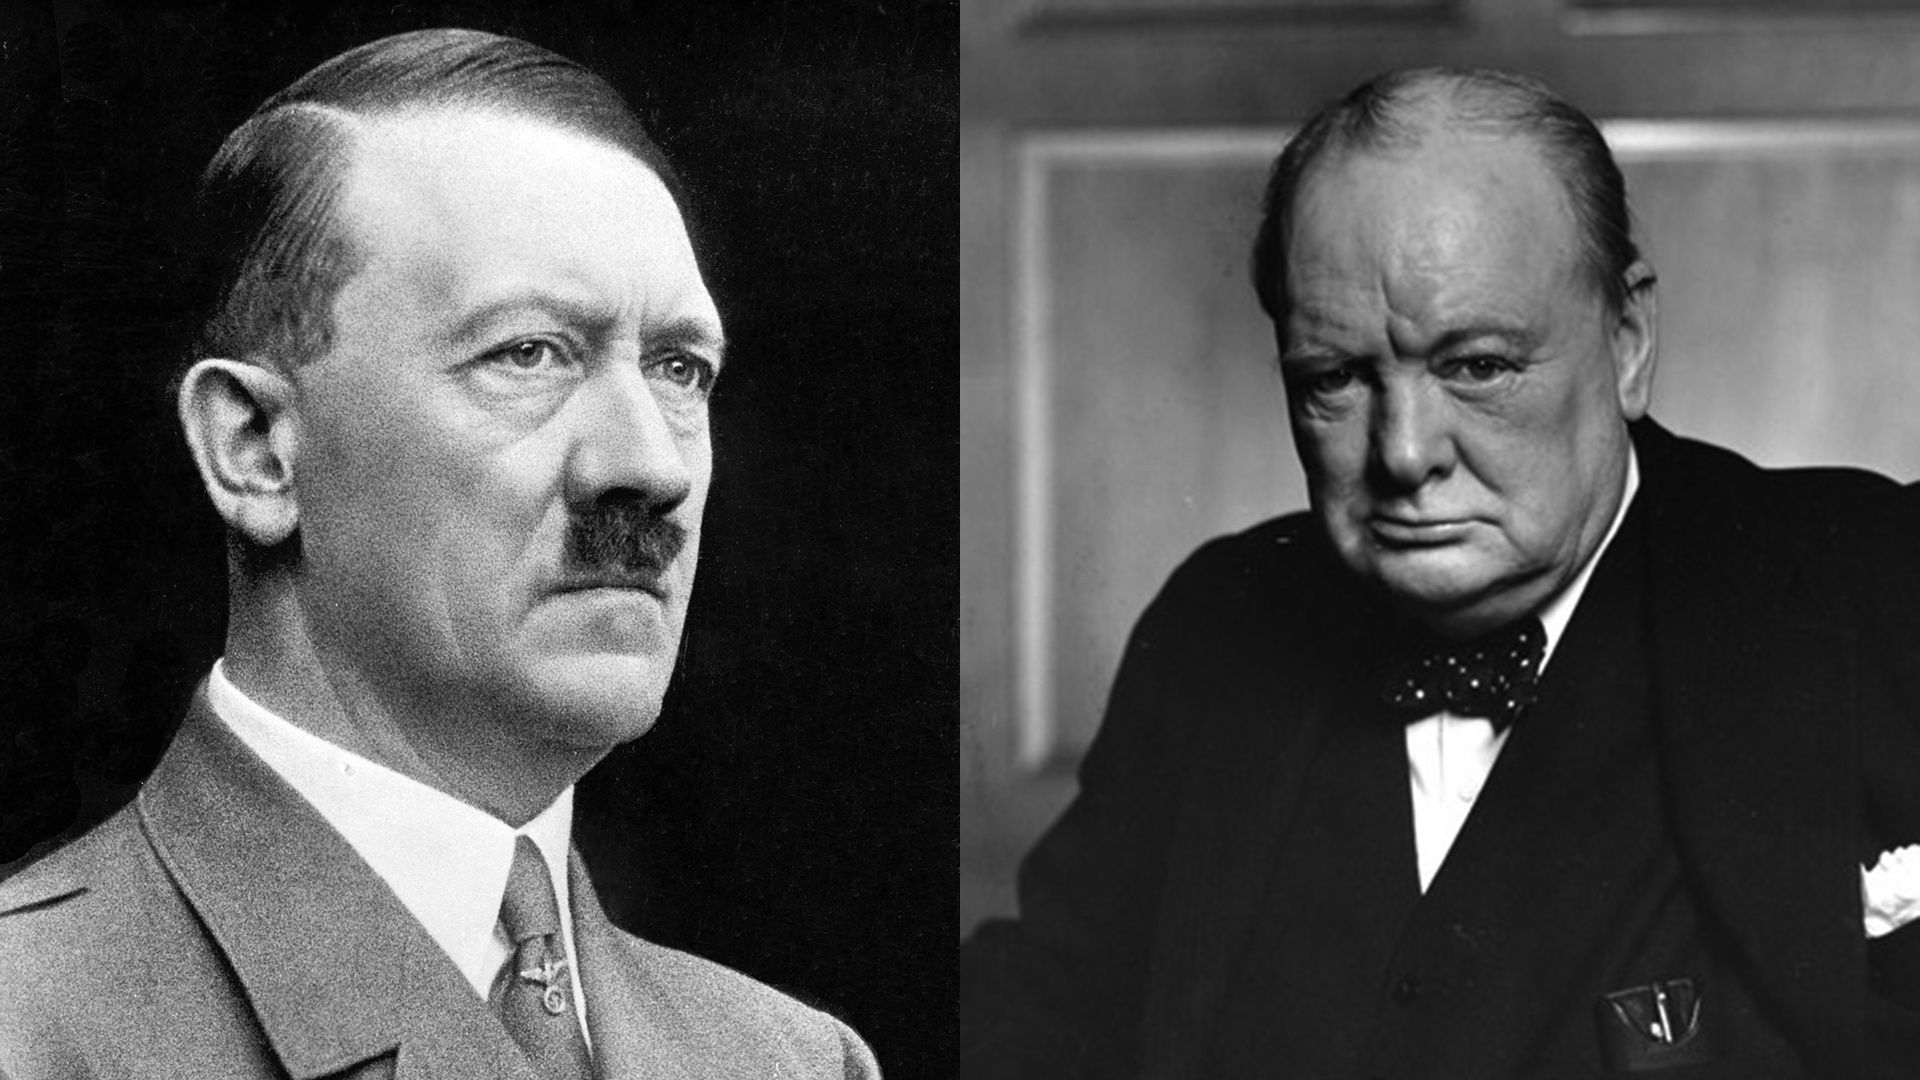 how were hitlers stalins laws goals & philosophies similar